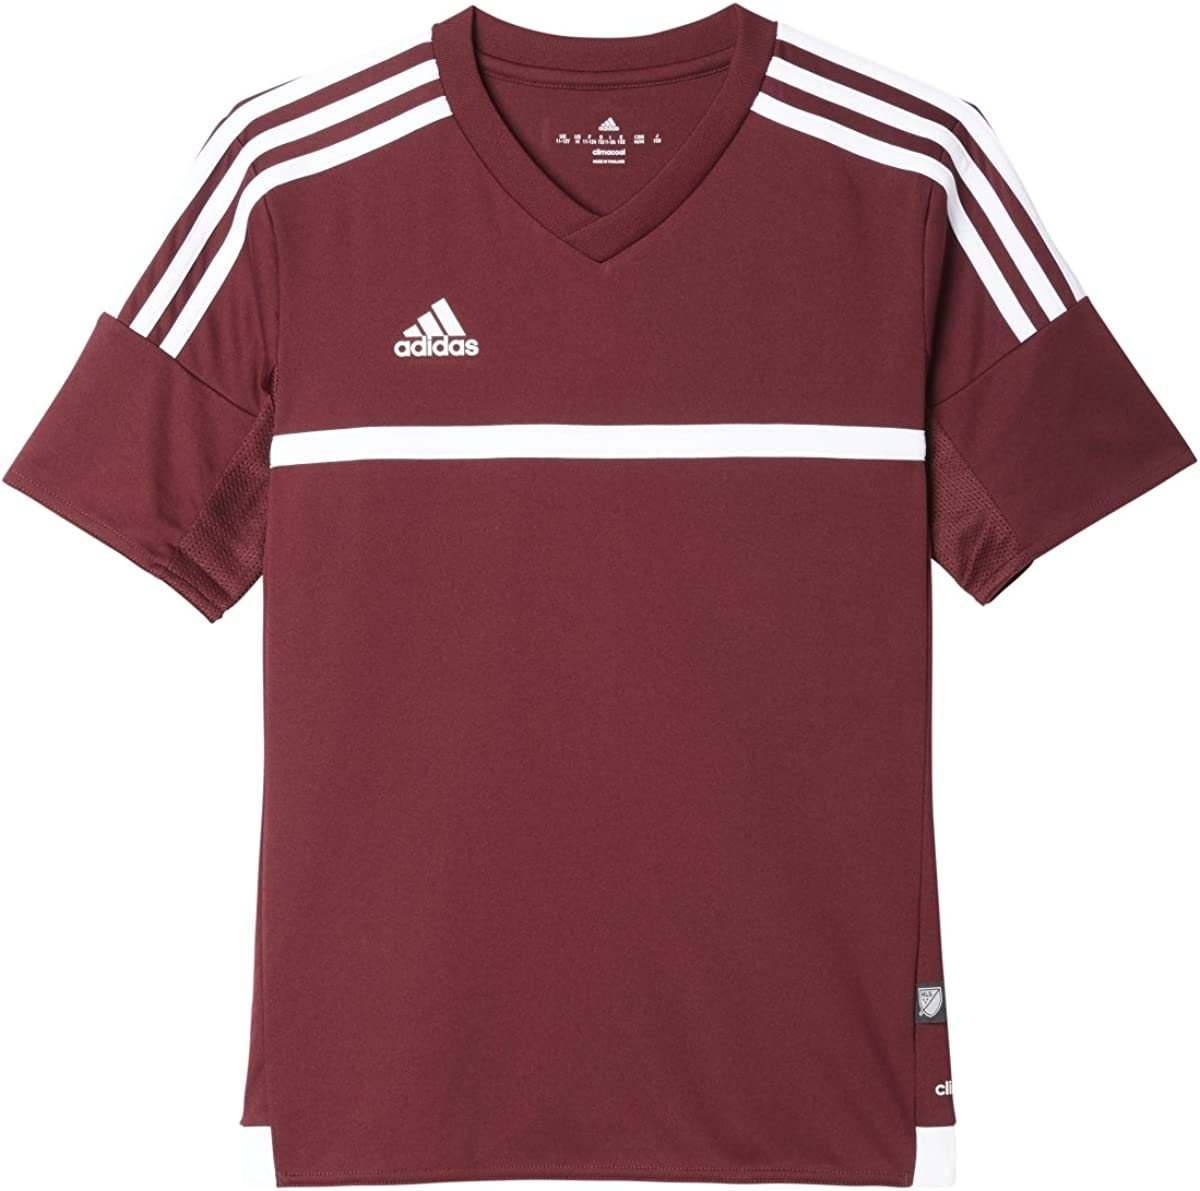 Parity > adidas mls 15 match jersey, Up to 66% OFF